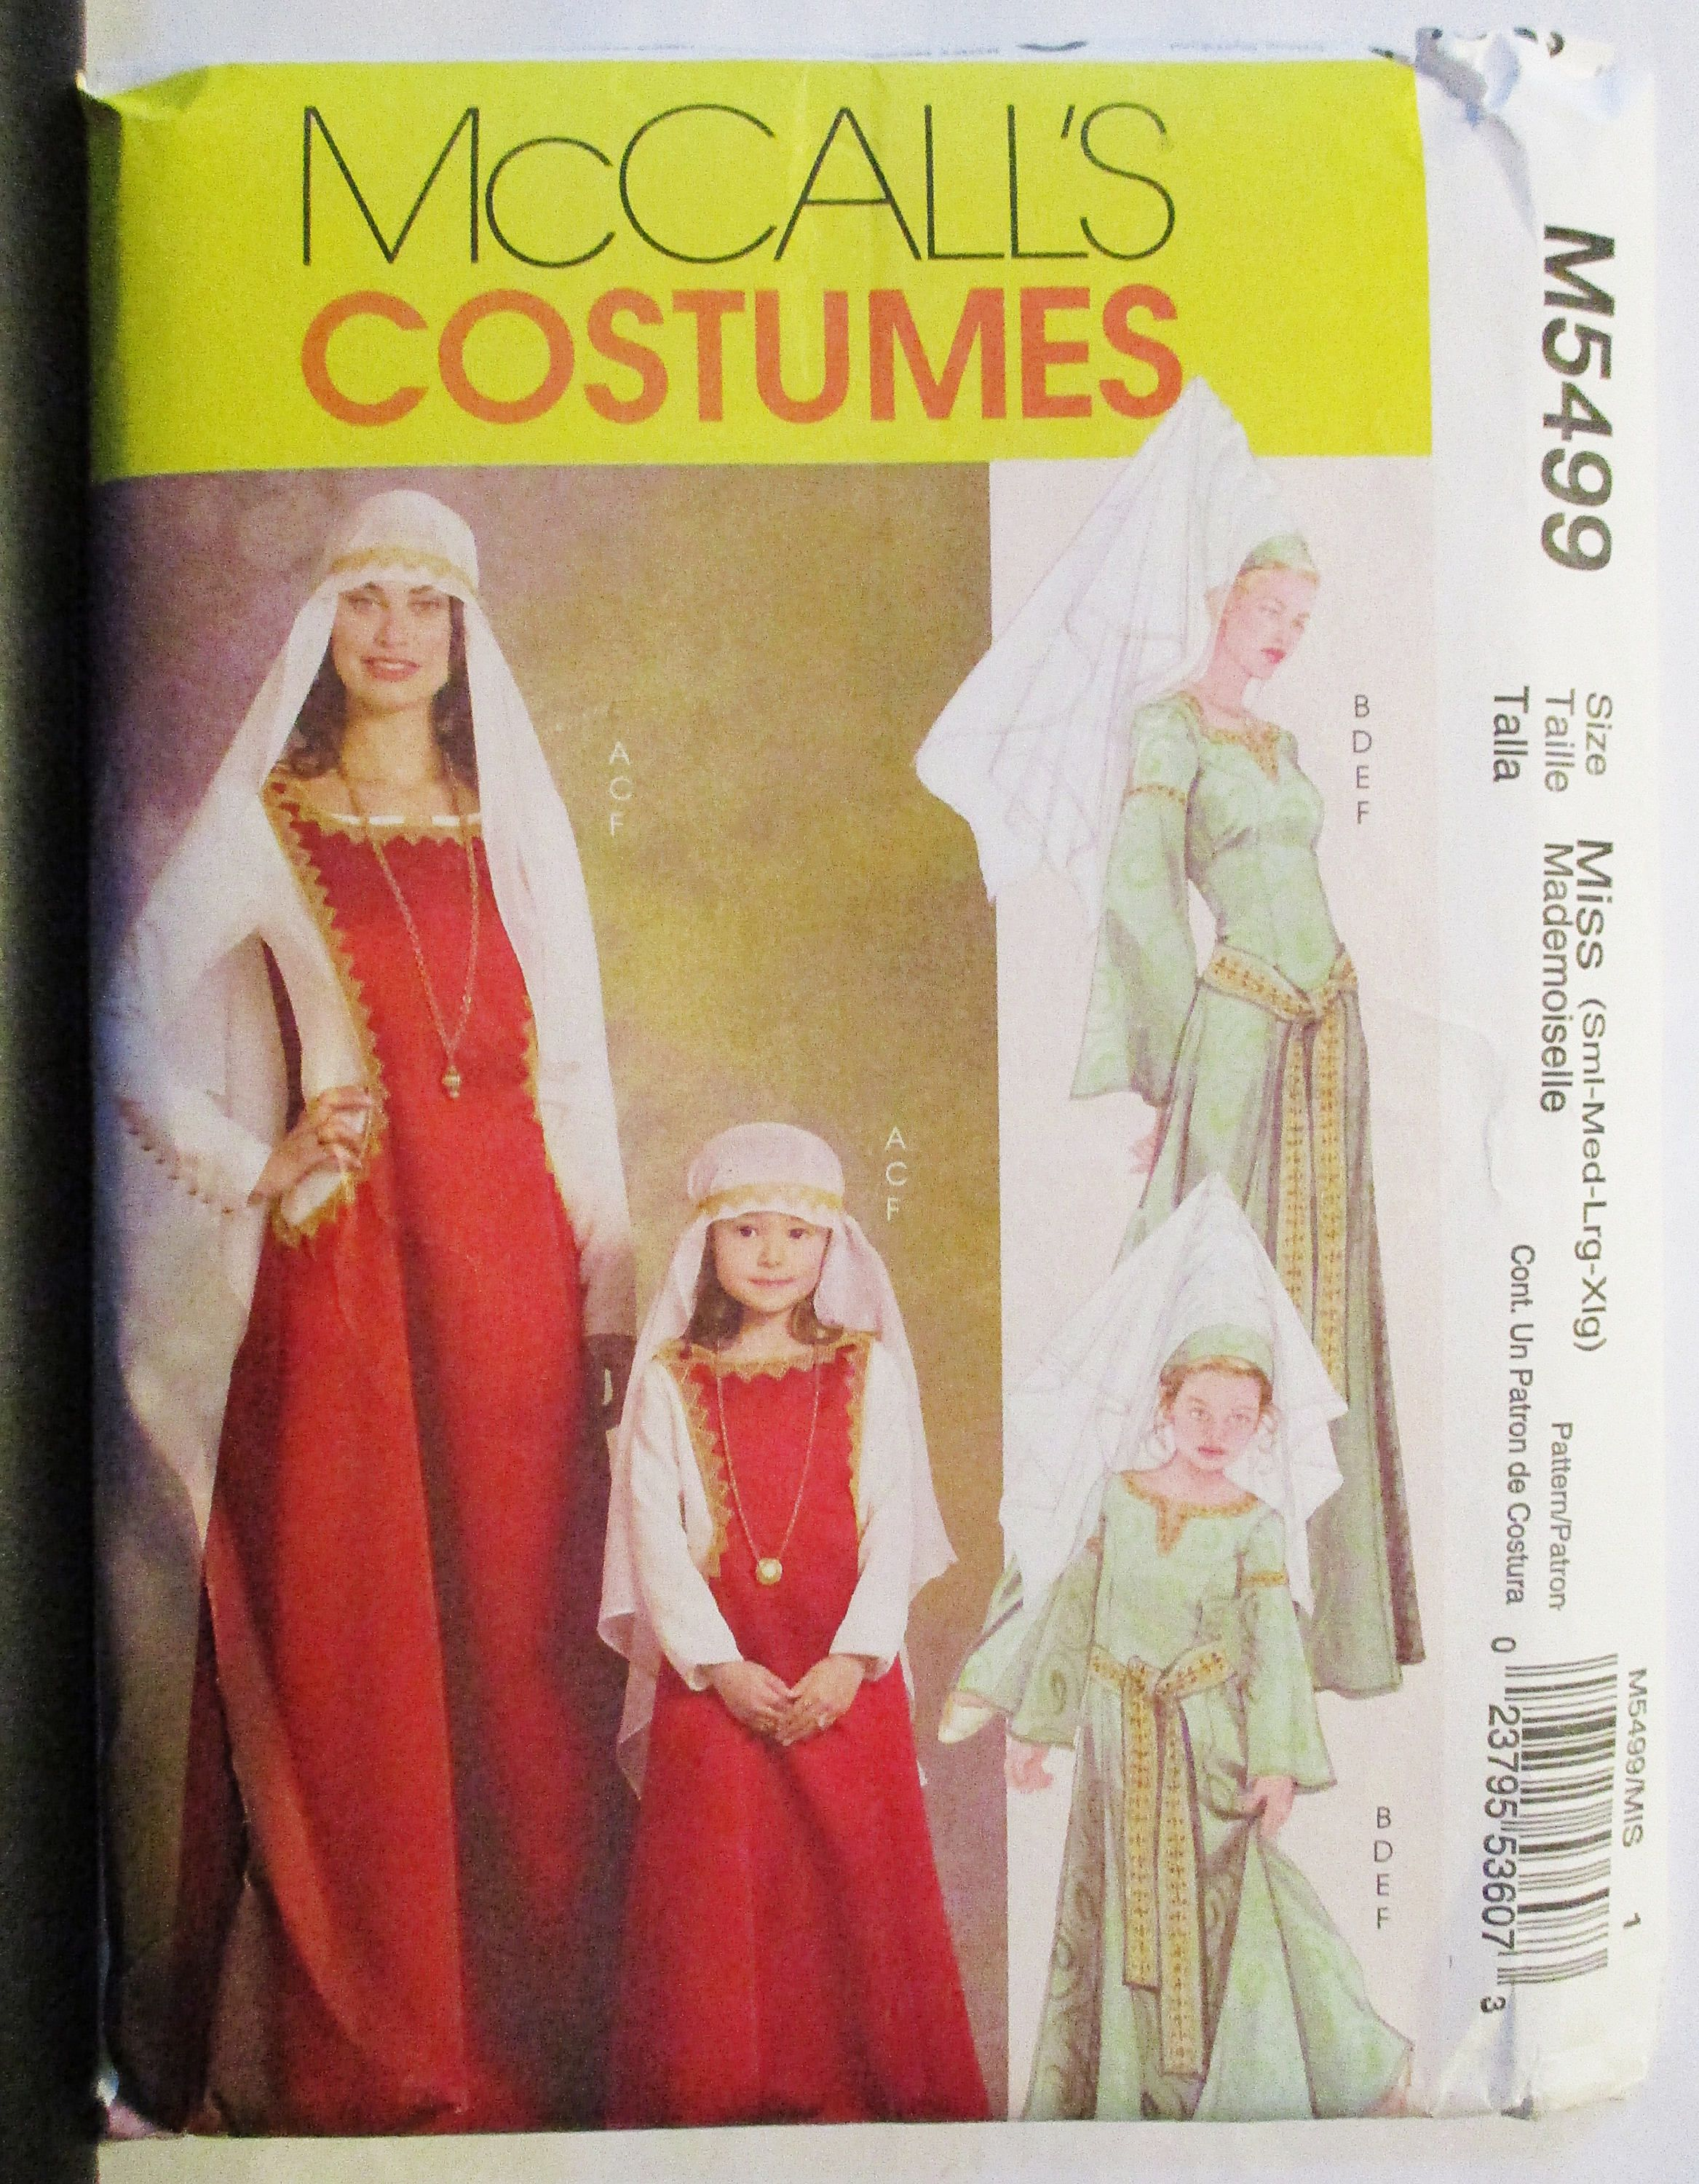 Mccalls 5499 sewing pattern misses medival costumes pattern size s mccalls 5499 sewing pattern misses medival costumes pattern size s m l xl uncut jeuxipadfo Images